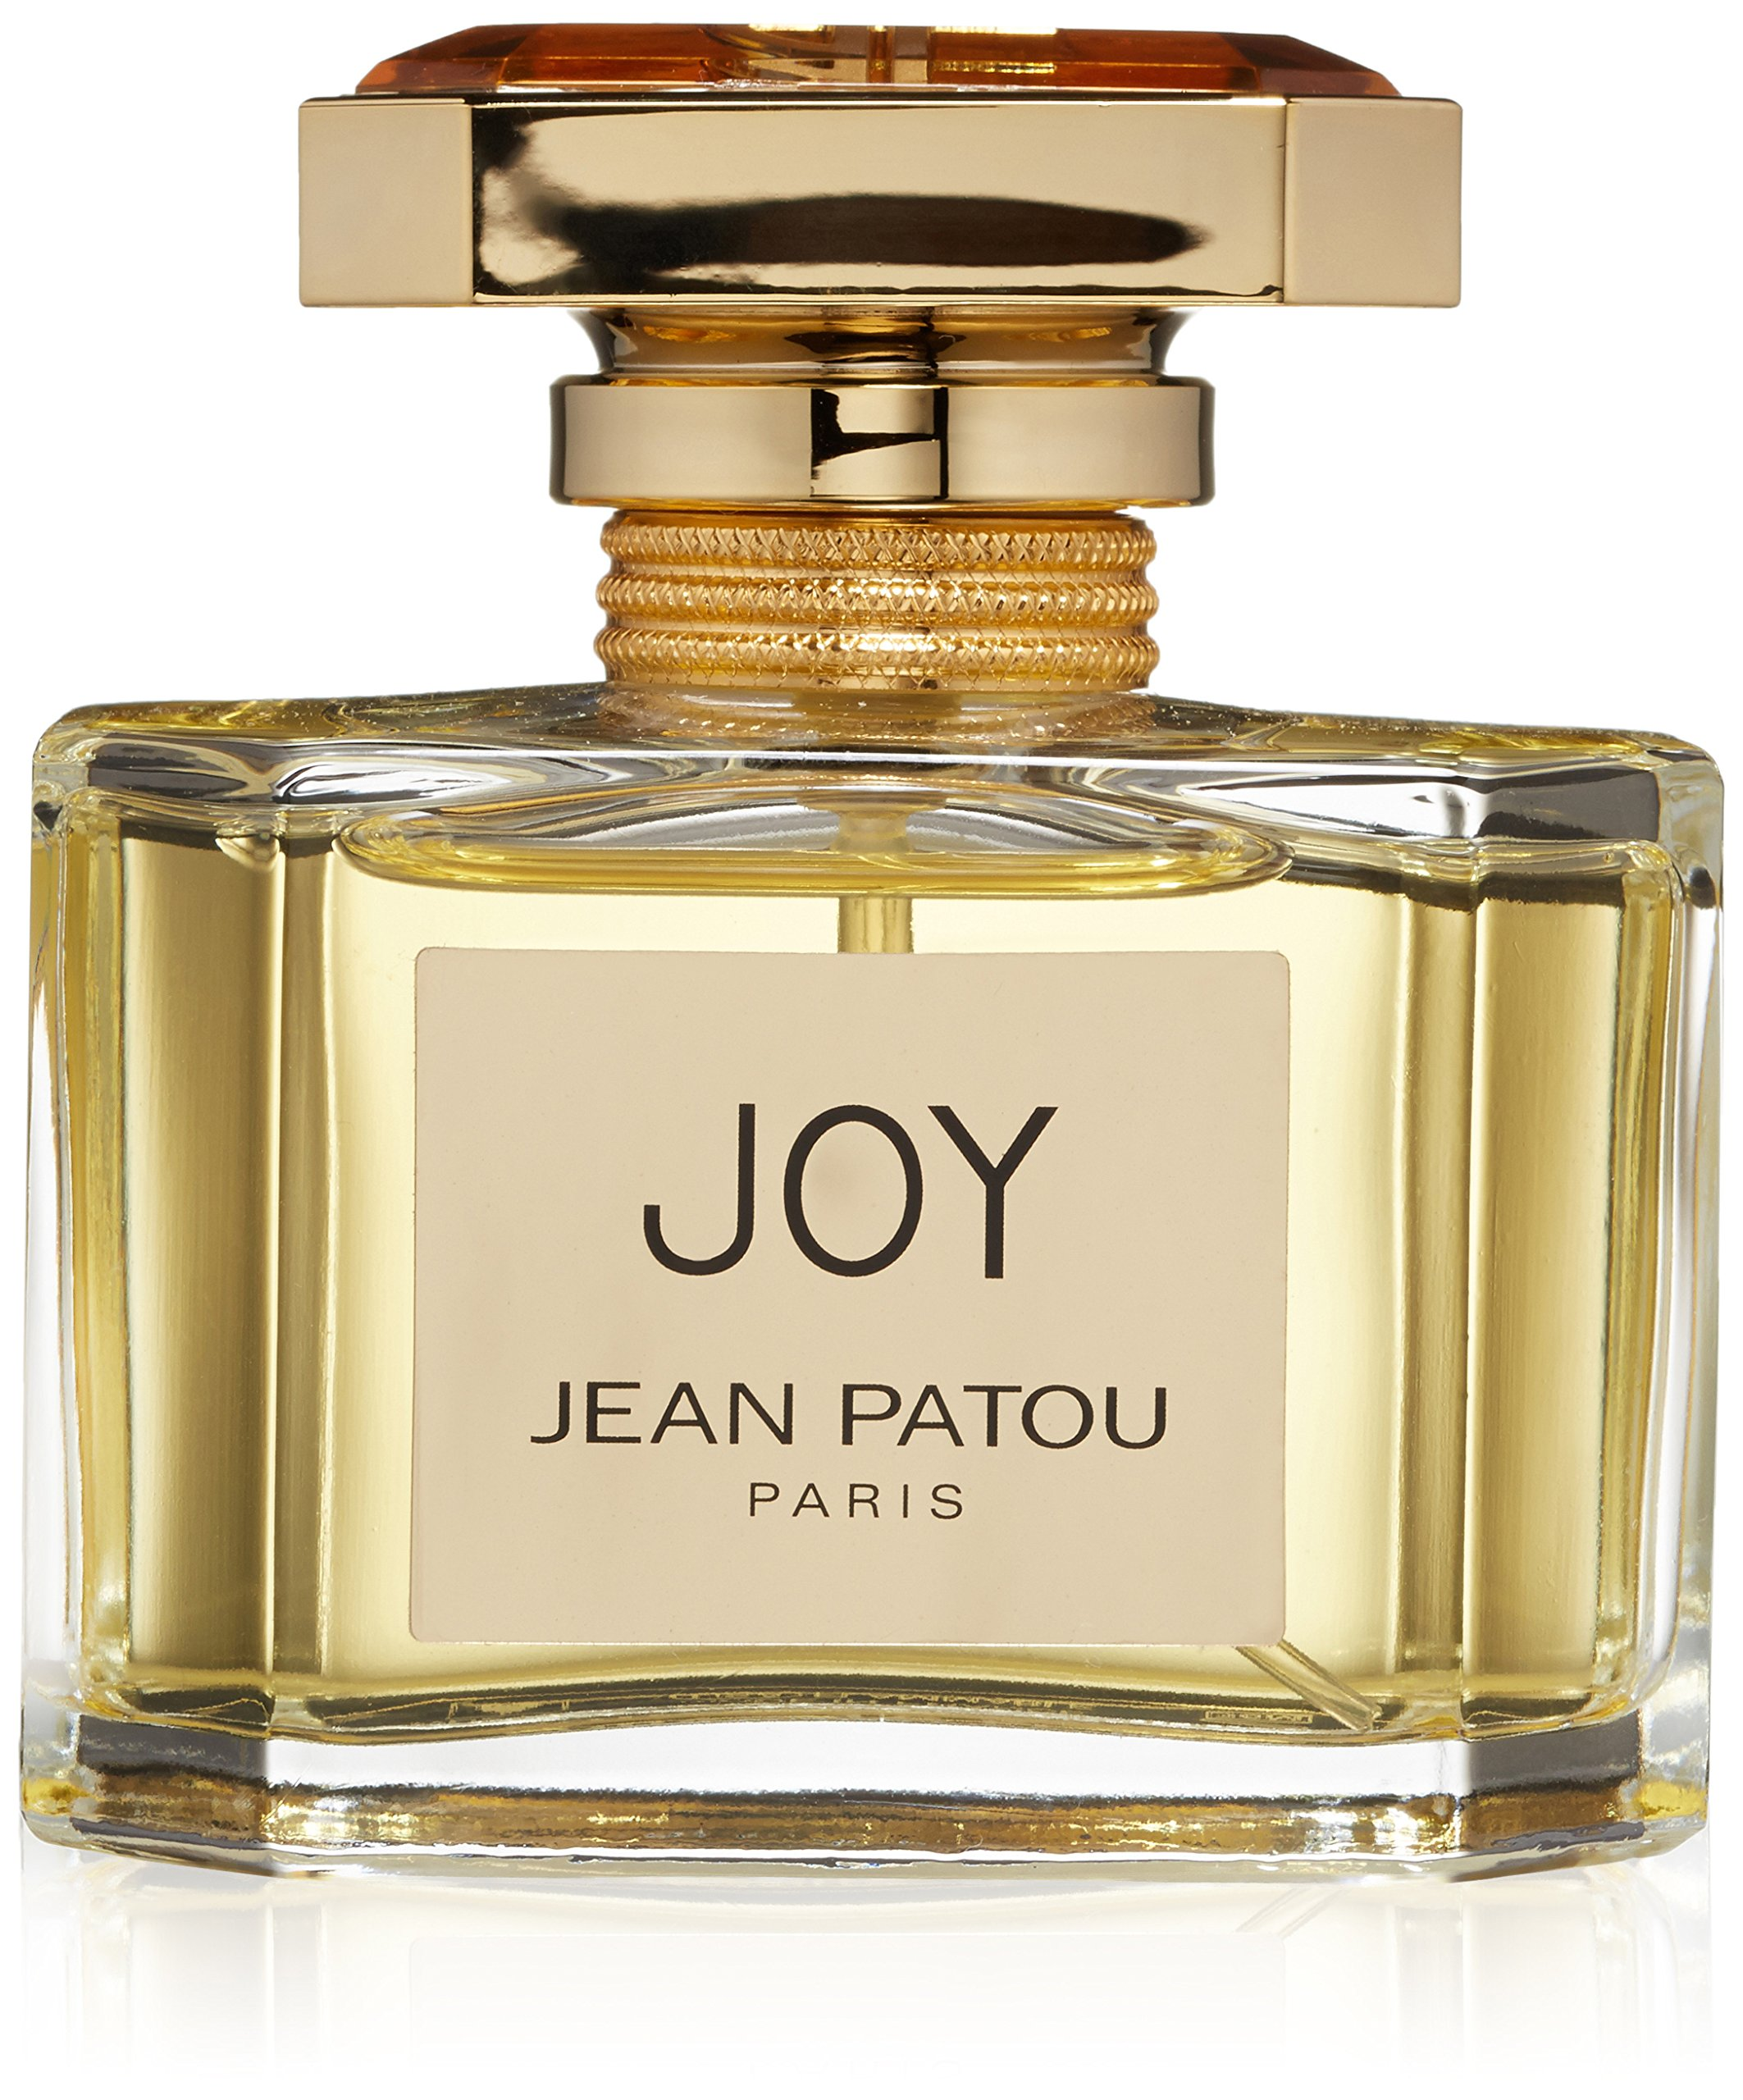 Jean Patou Joy Eau de Parfum Spray, 1.6 fl. oz. by Jean Patou (Image #1)